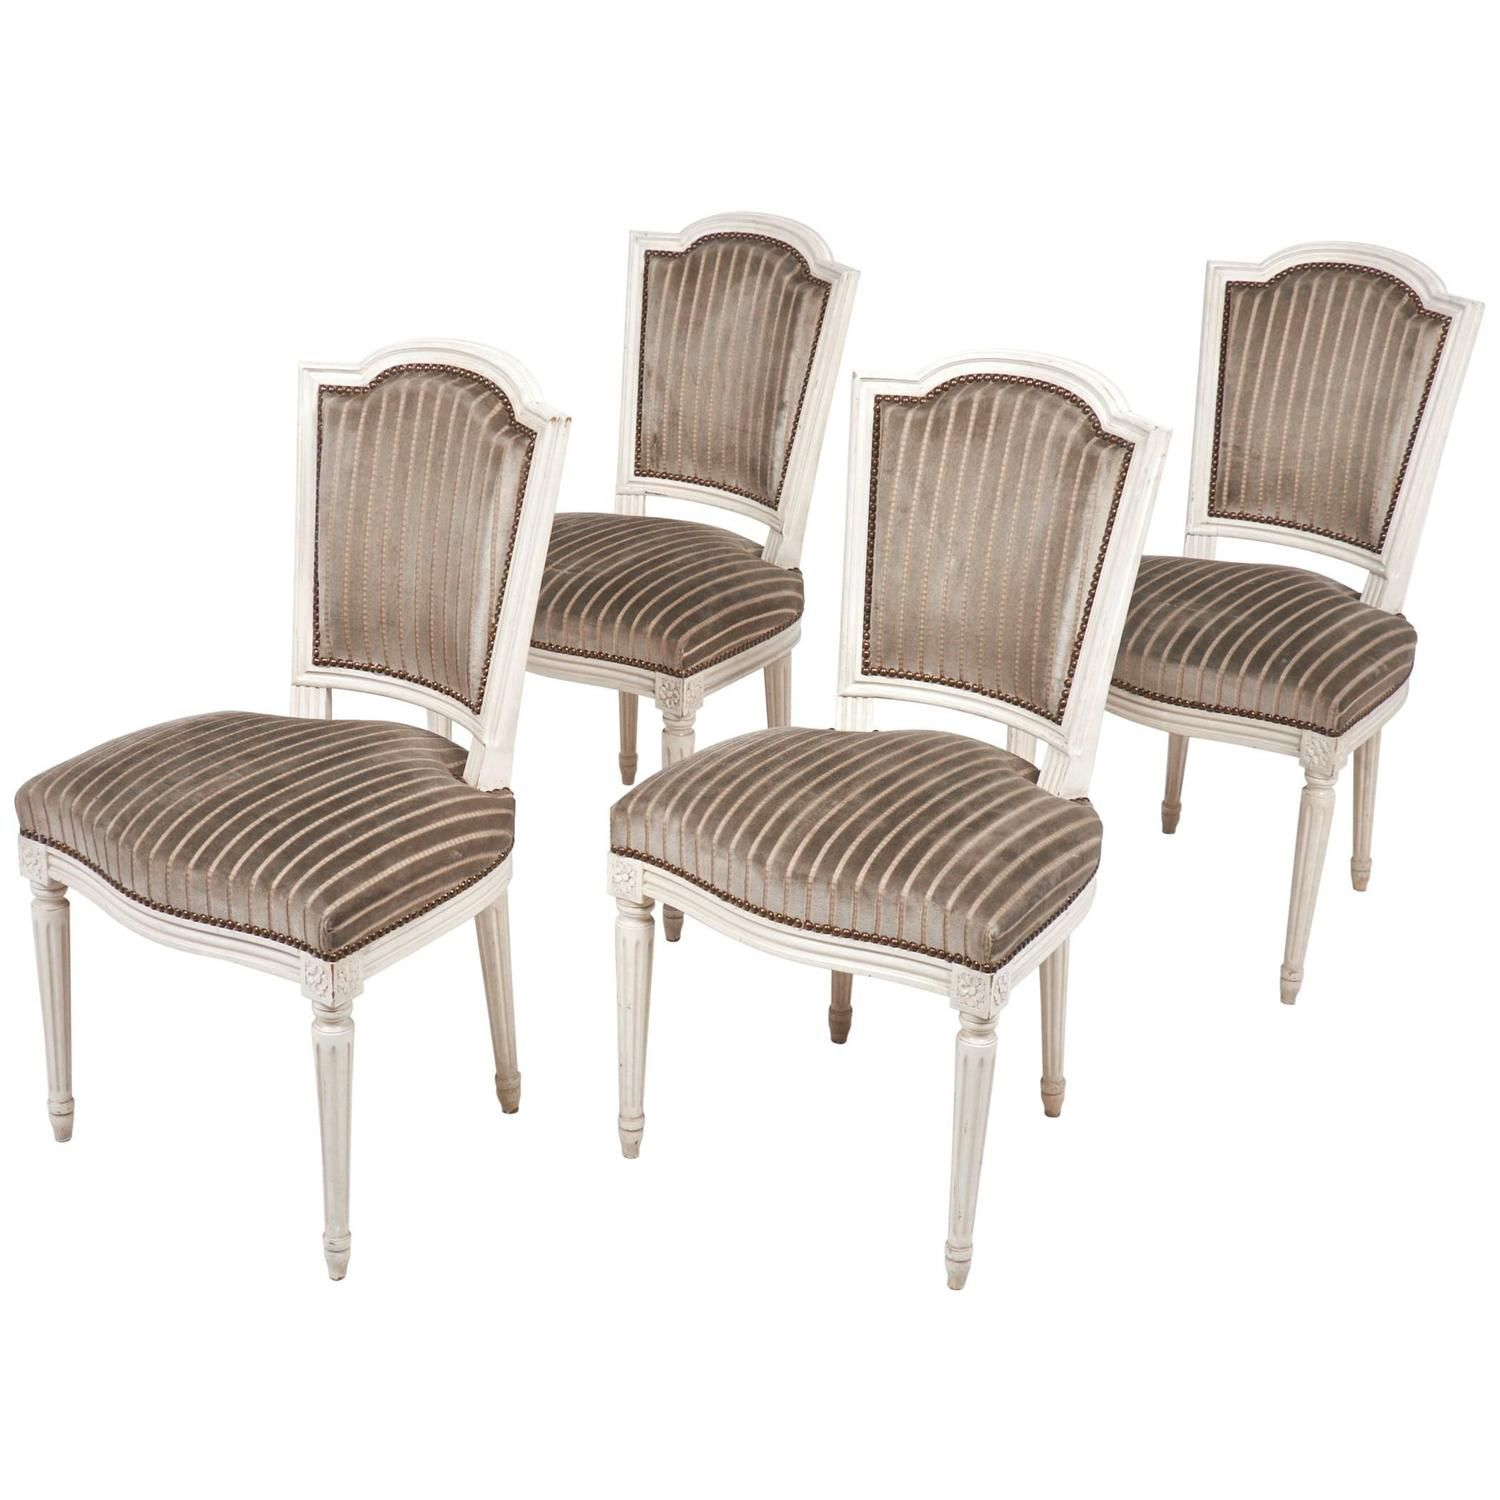 Antique louis xvi style dining chair set of four jean